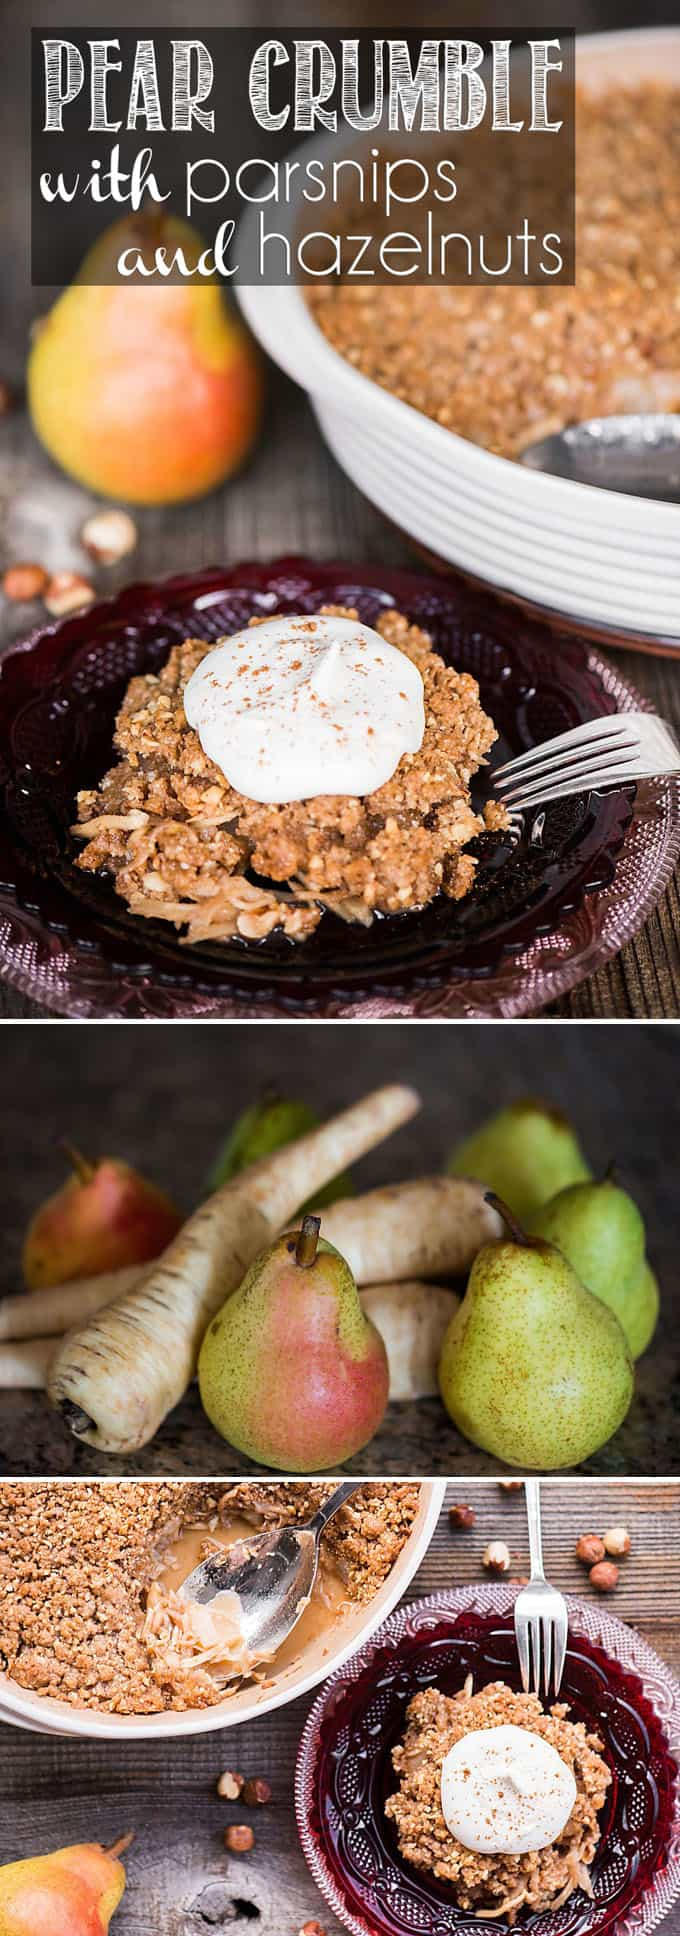 Pear Crumble with shredded parsnips and toasted hazelnuts is an easy fall dessert recipe that is similar to a cobbler, crisp, or pie.